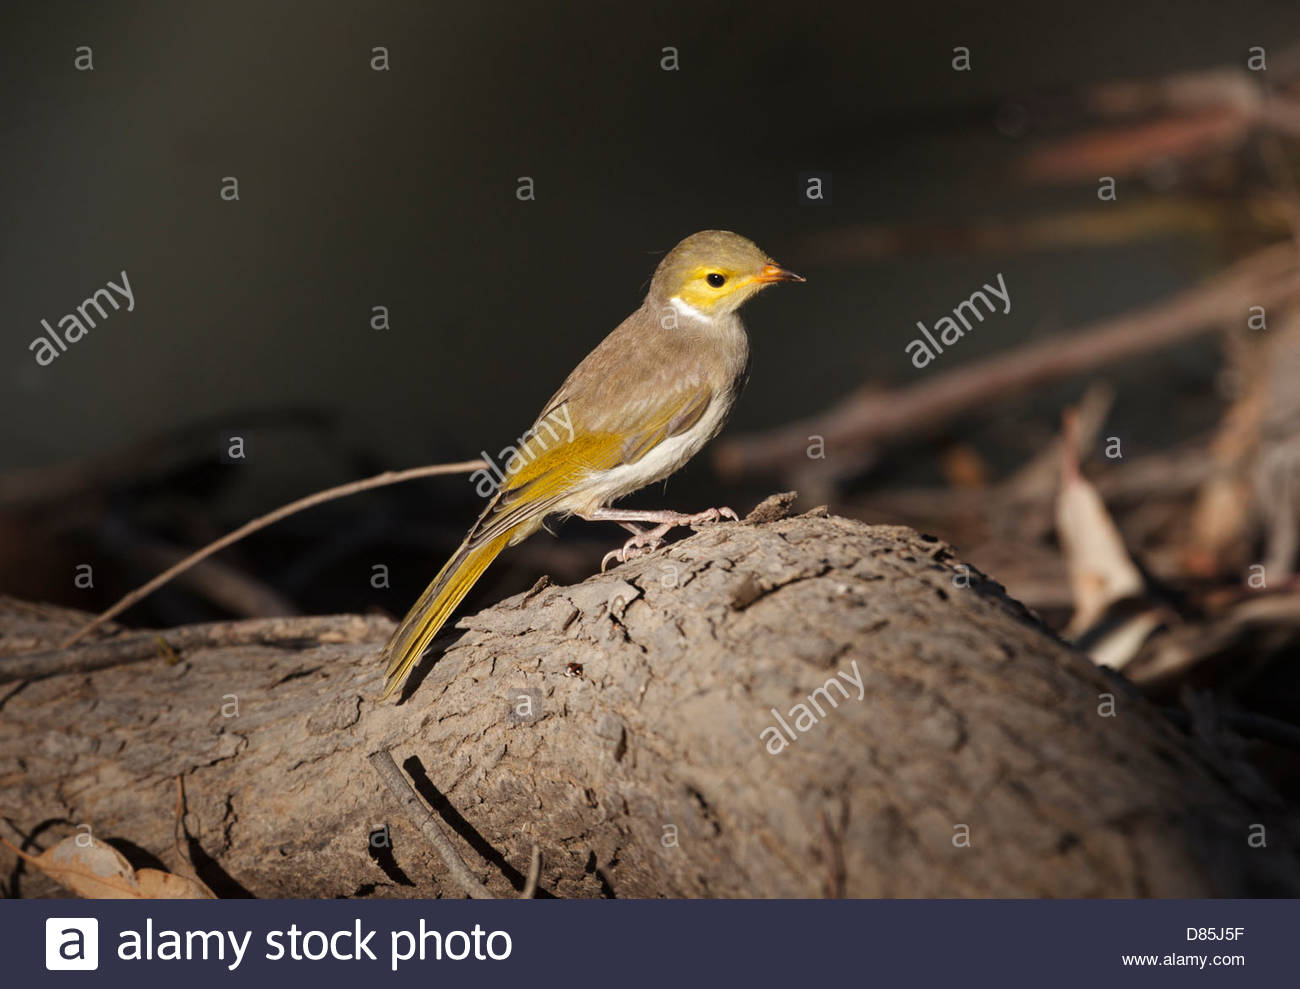 White-plumed Honeyeater on the bank of the Darling River, Kinchega National Park, New South Wales, Australia - Stock Image